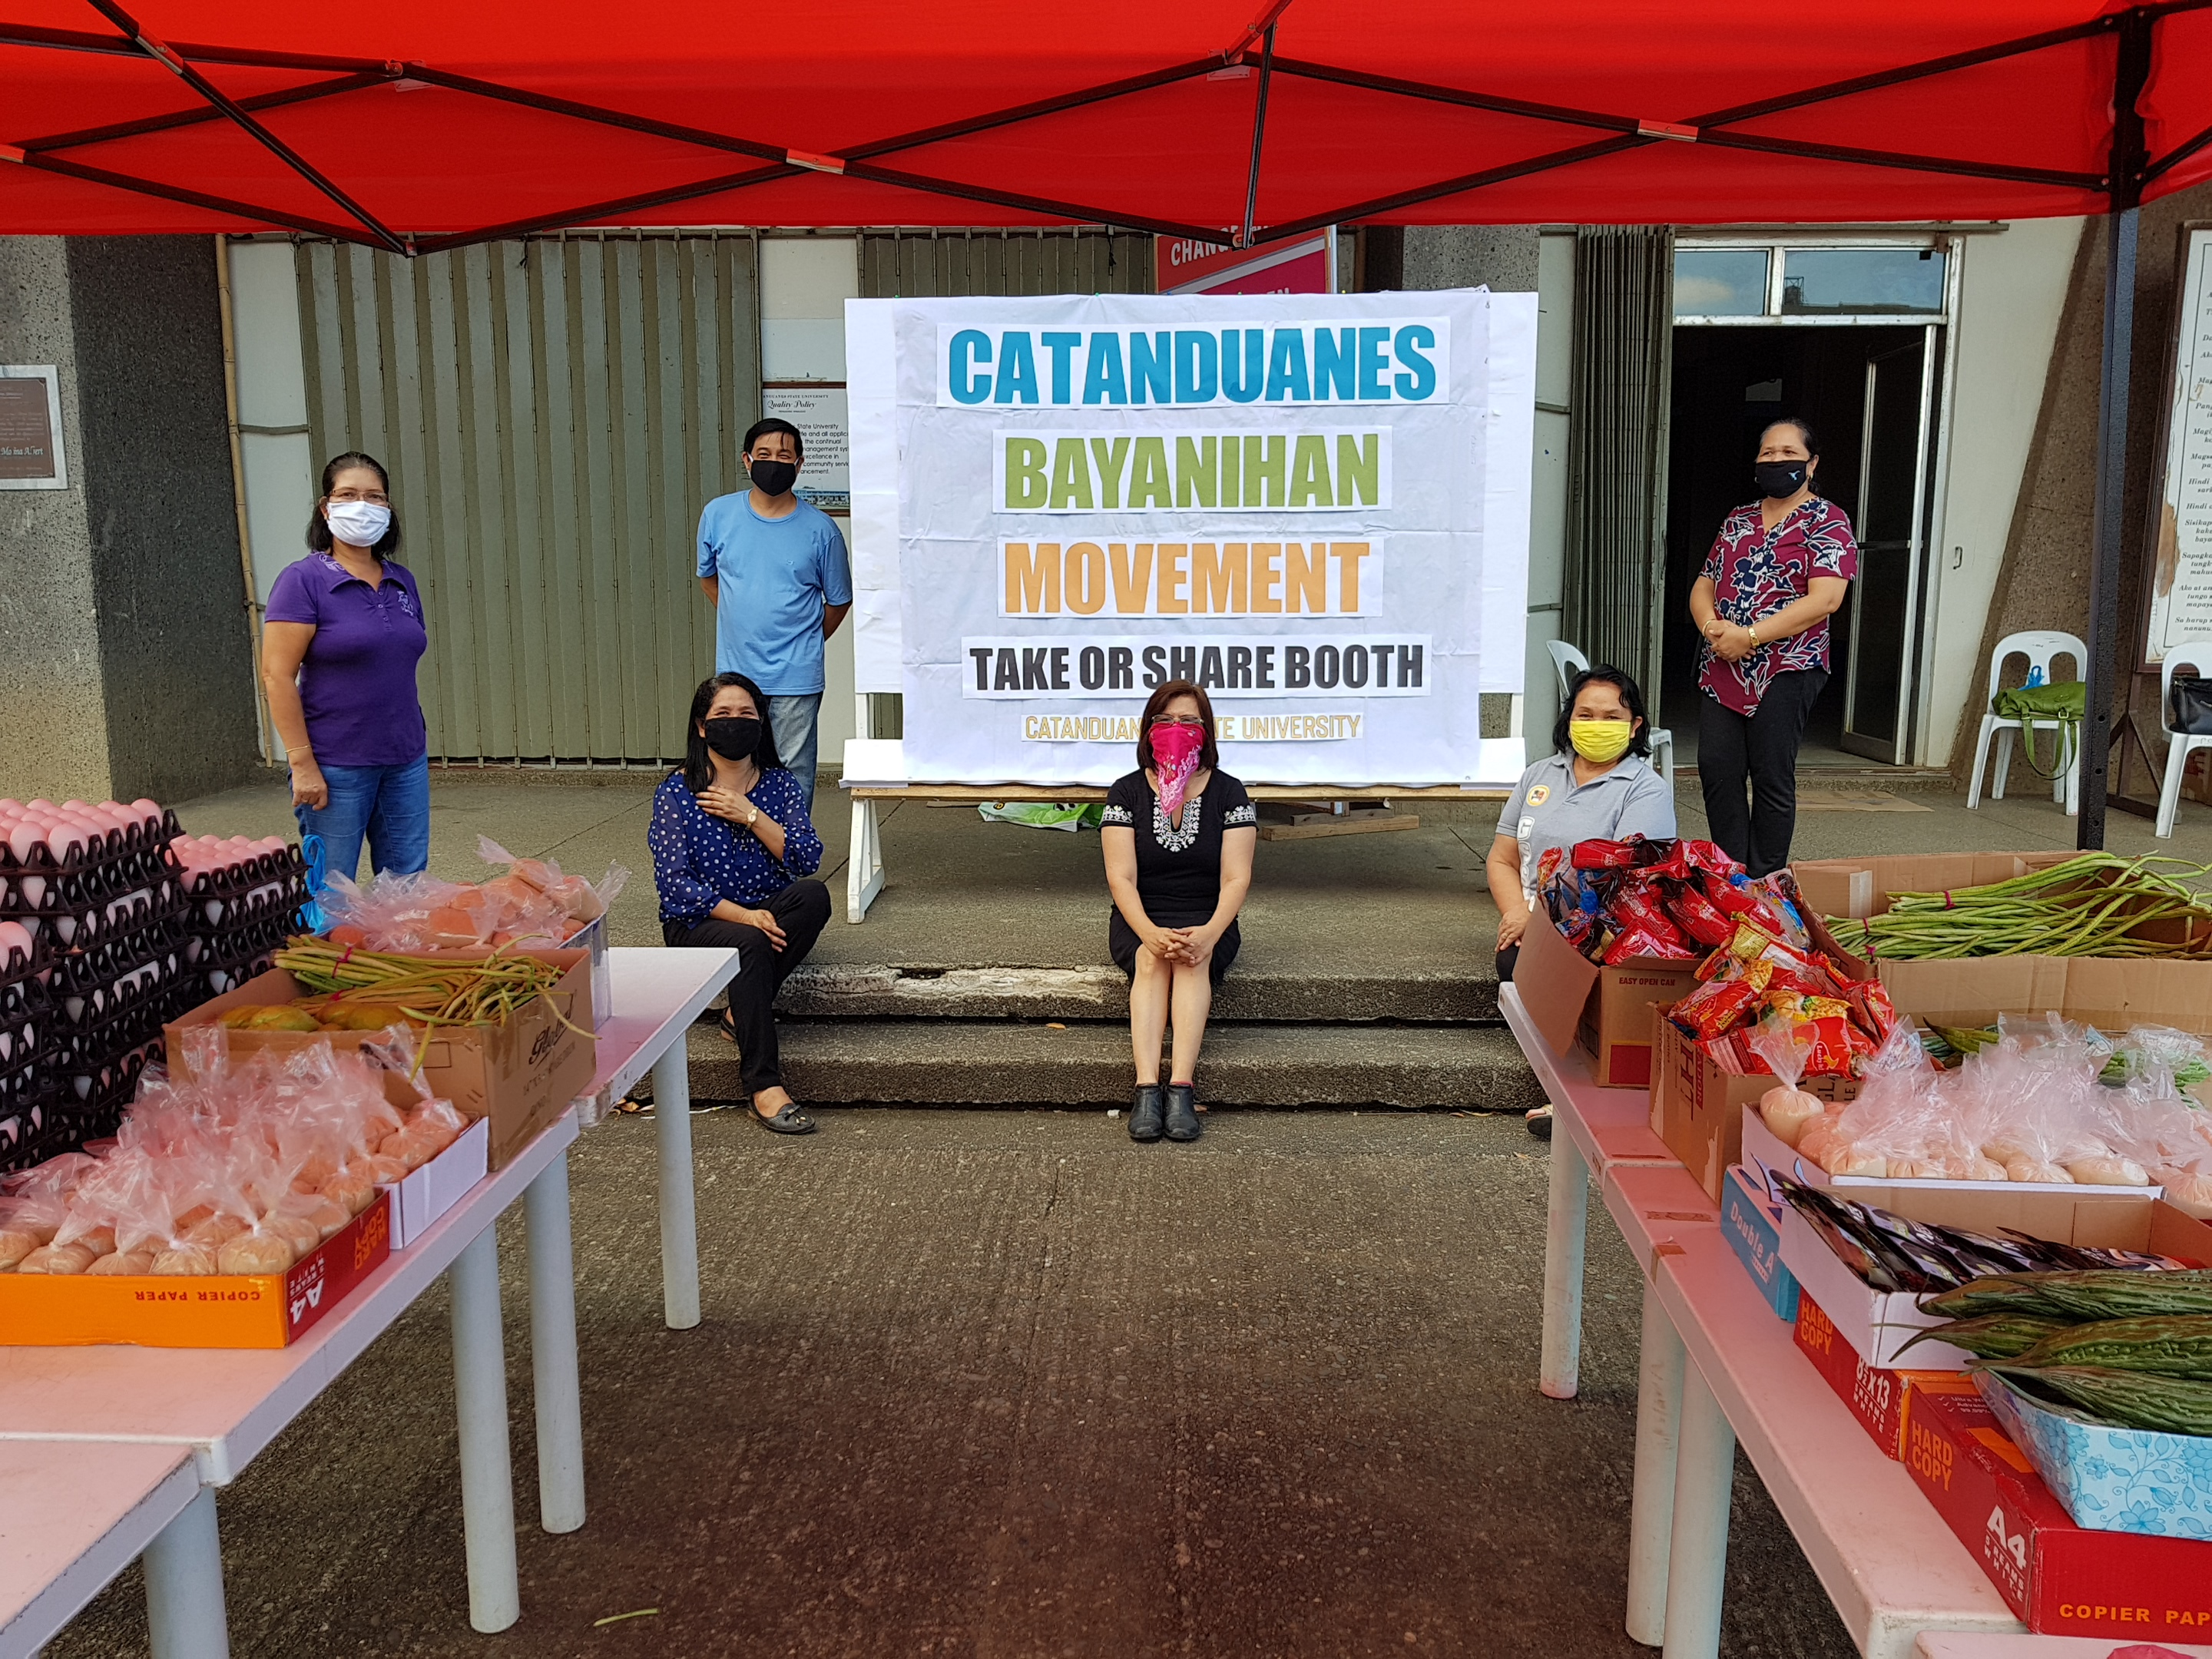 LEND A HAND FOR THE NEEDY WITH CATANDUANES BAYANIHAN MOVEMENT AT CatSU DURING COVID-19 CRISIS